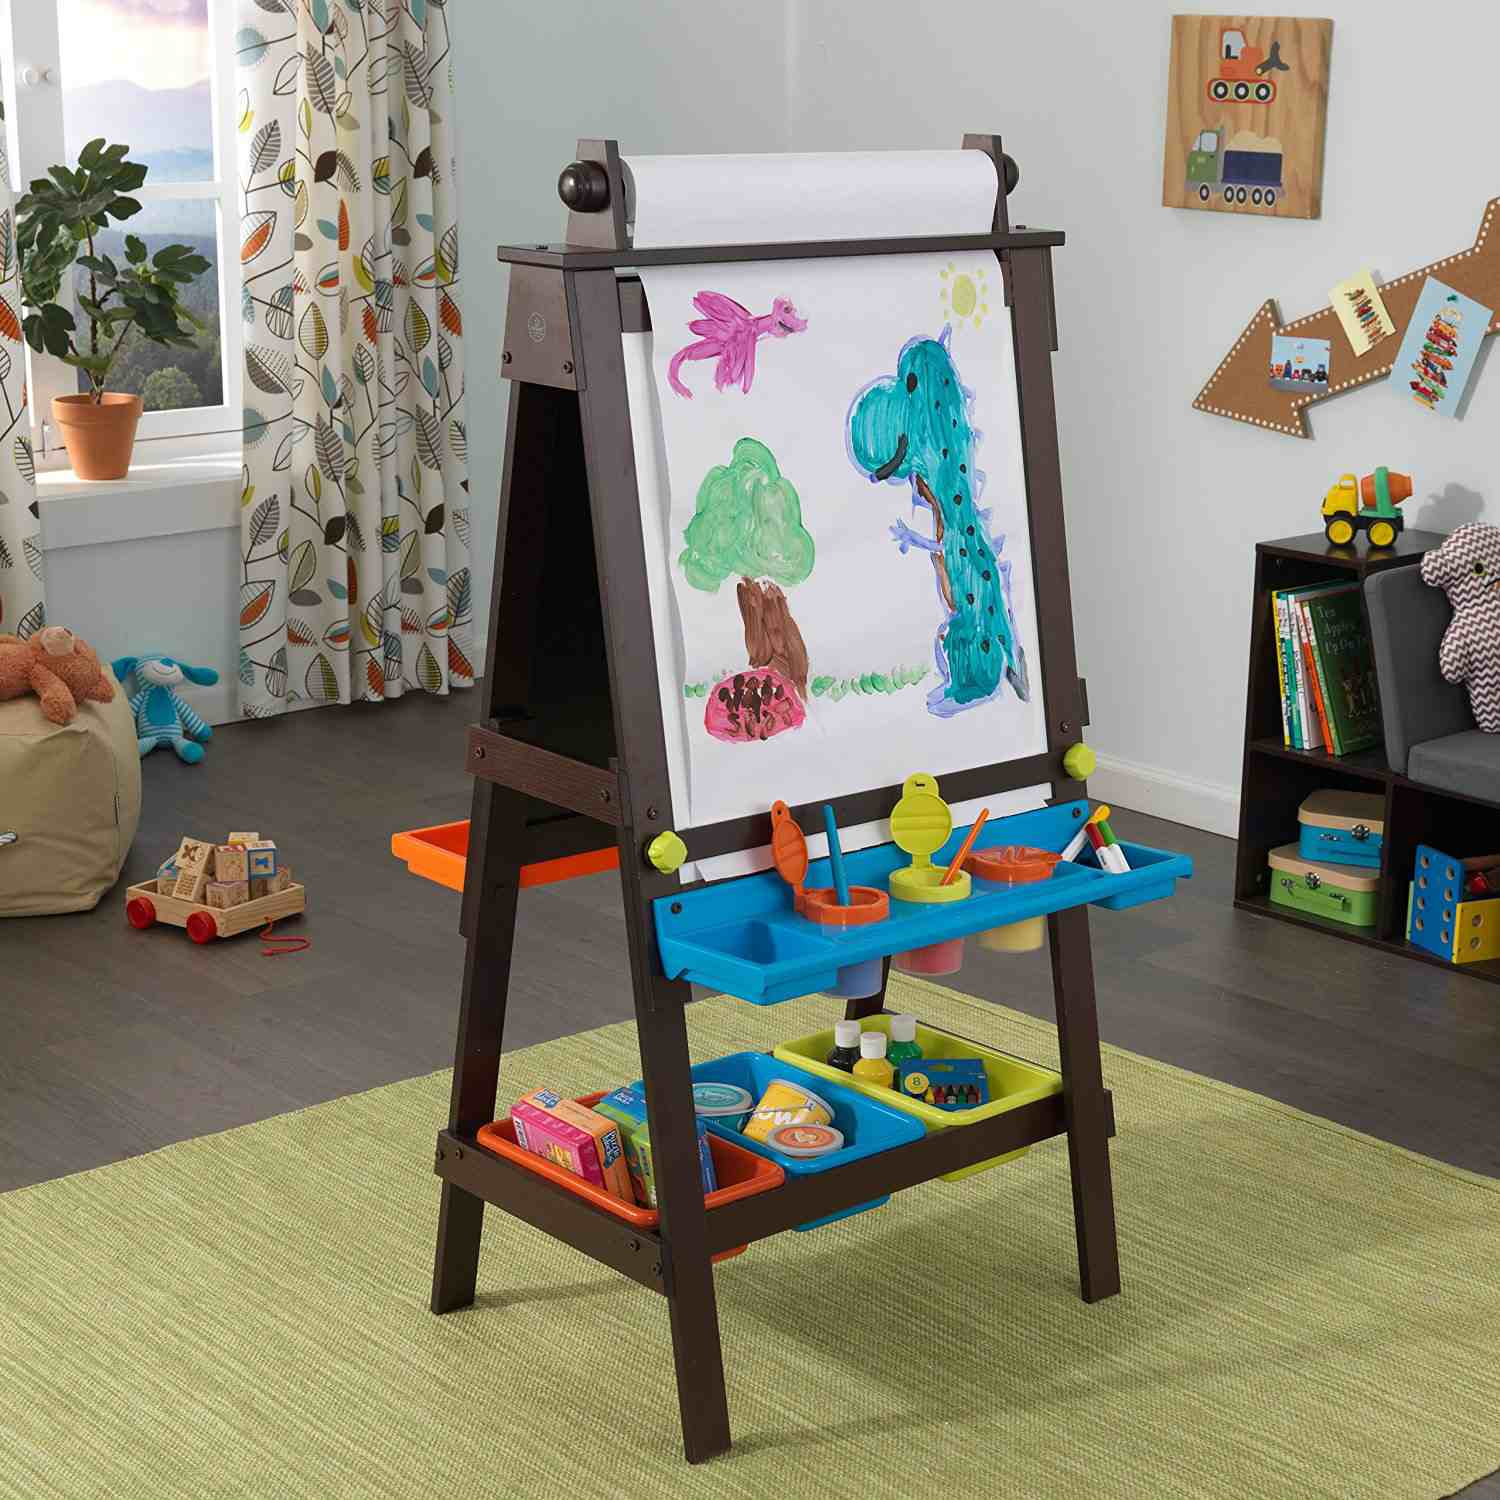 The 7 Best Art Easels for Kids of 2020 on Easel Decorating Ideas  id=86738